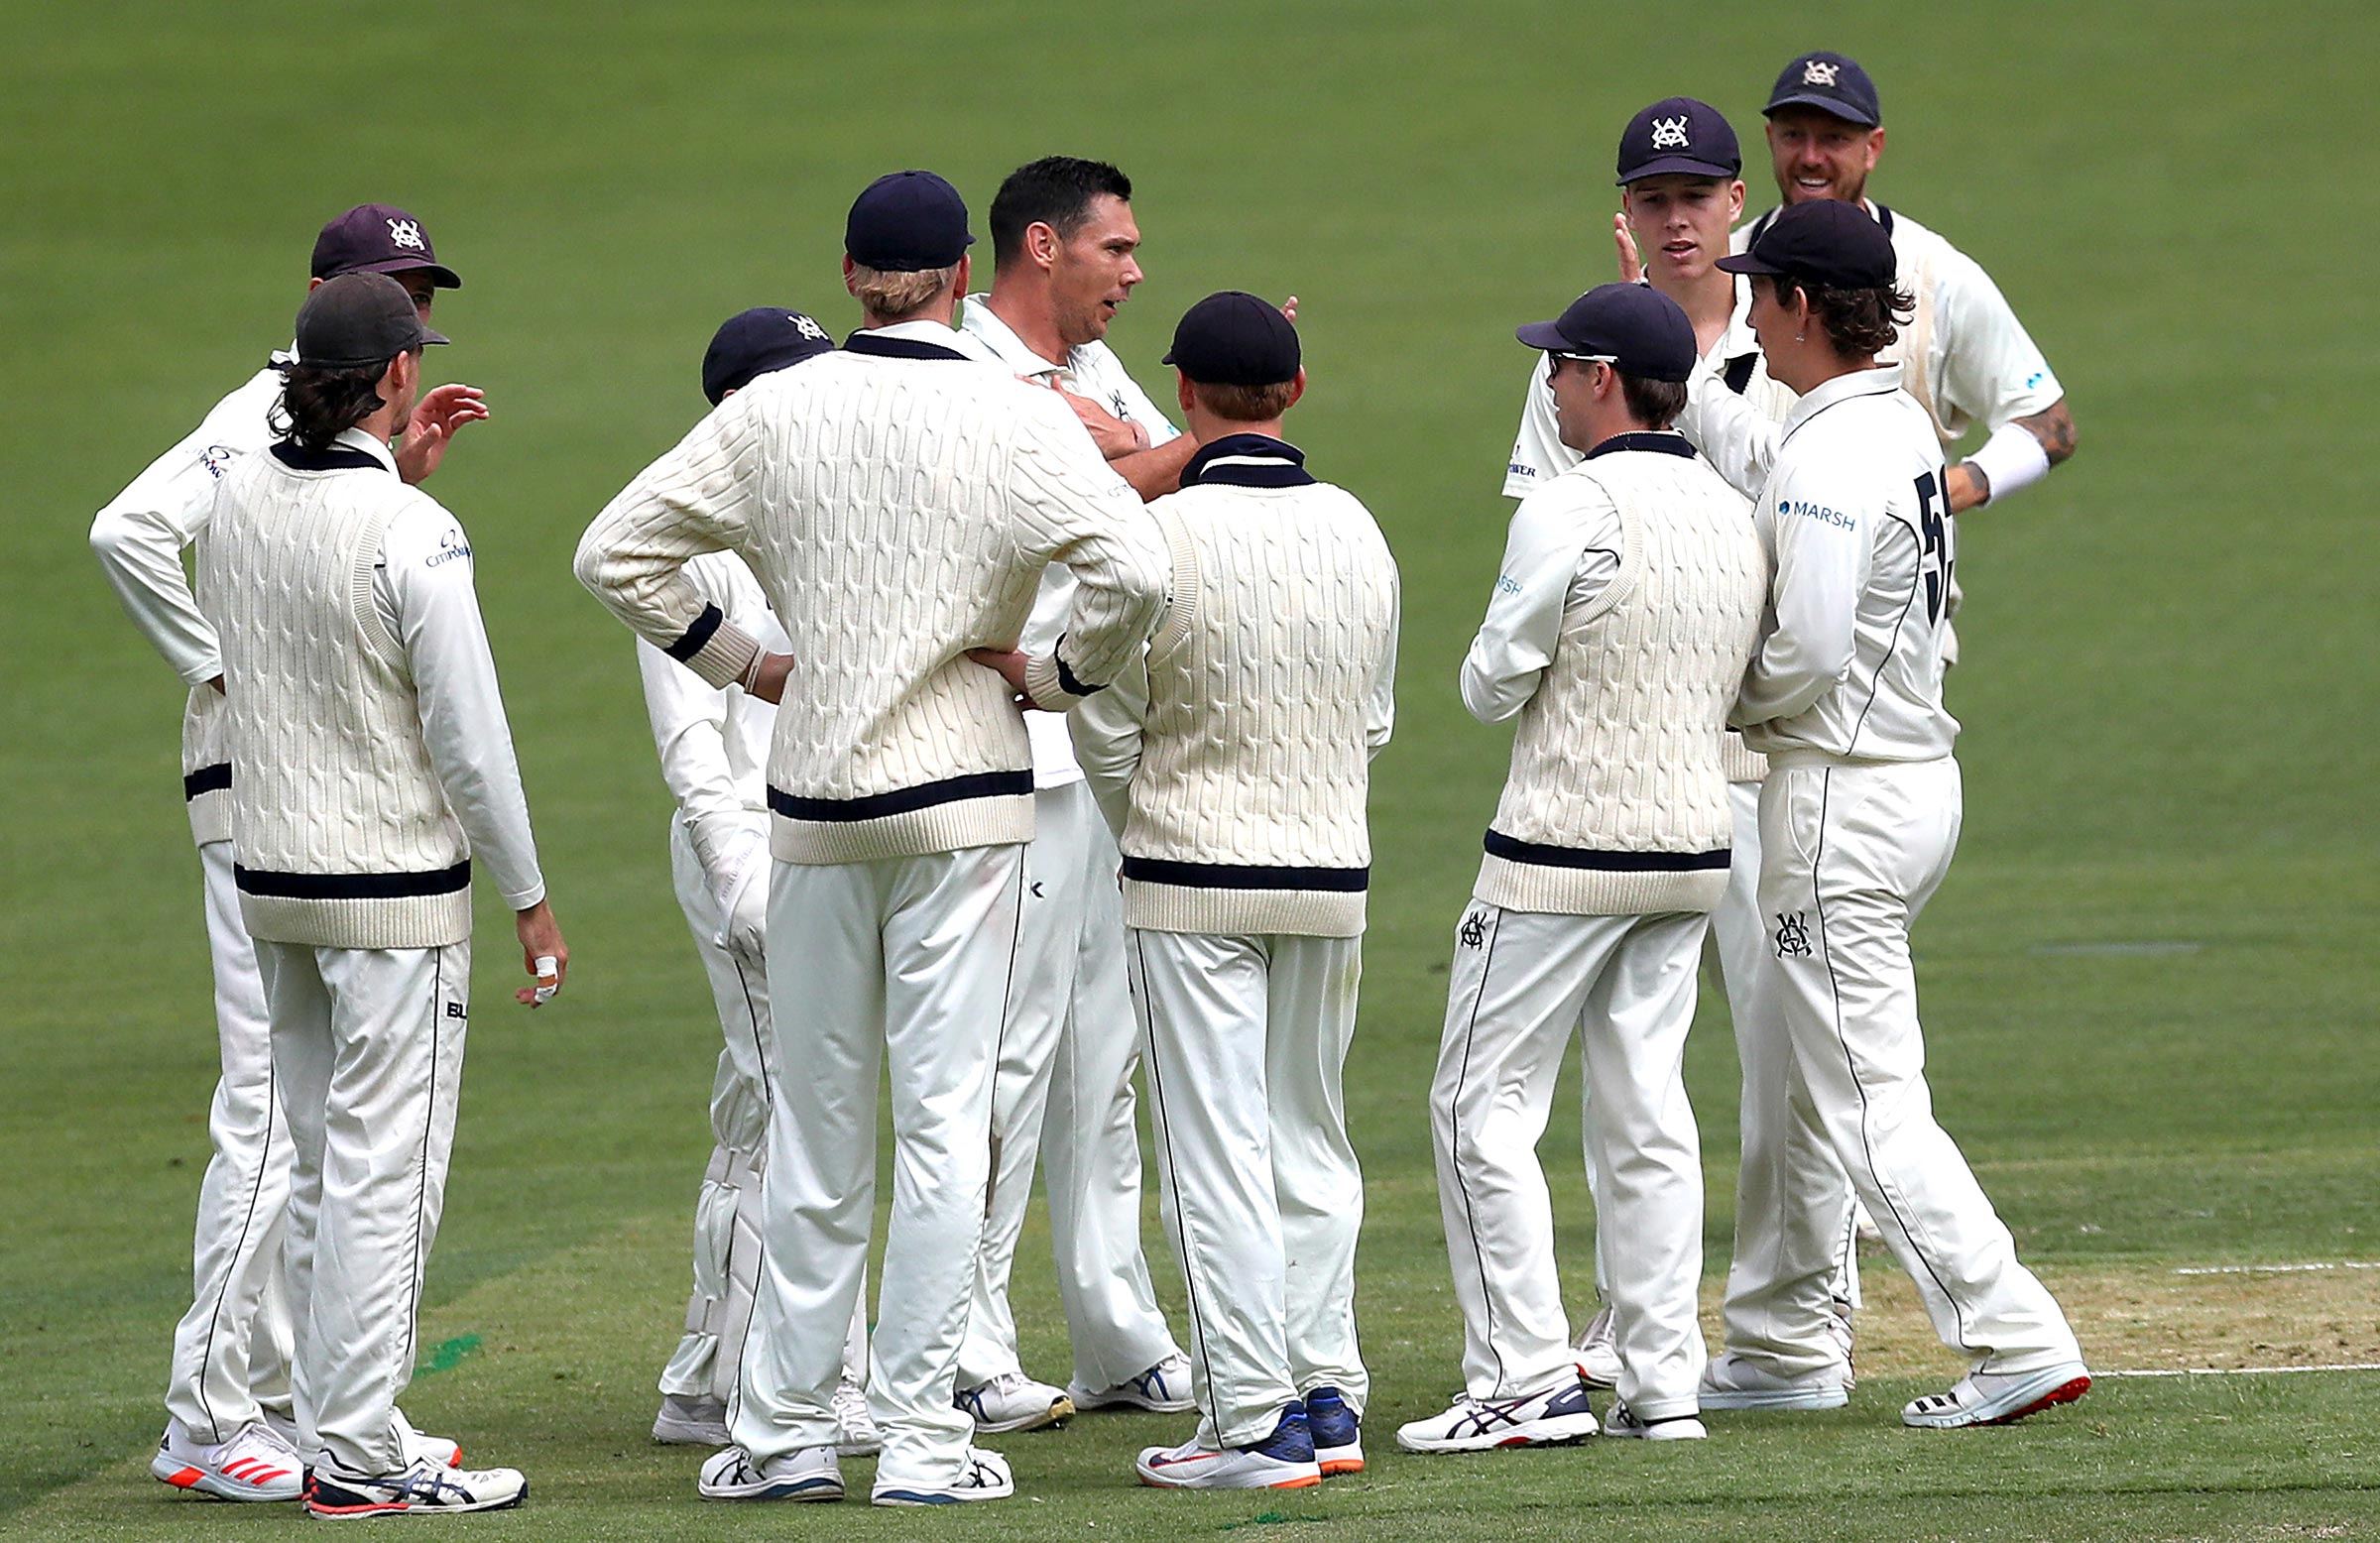 Victoria took two wickets while Tasmania's No.6 was in the air over Bass Strait // Getty